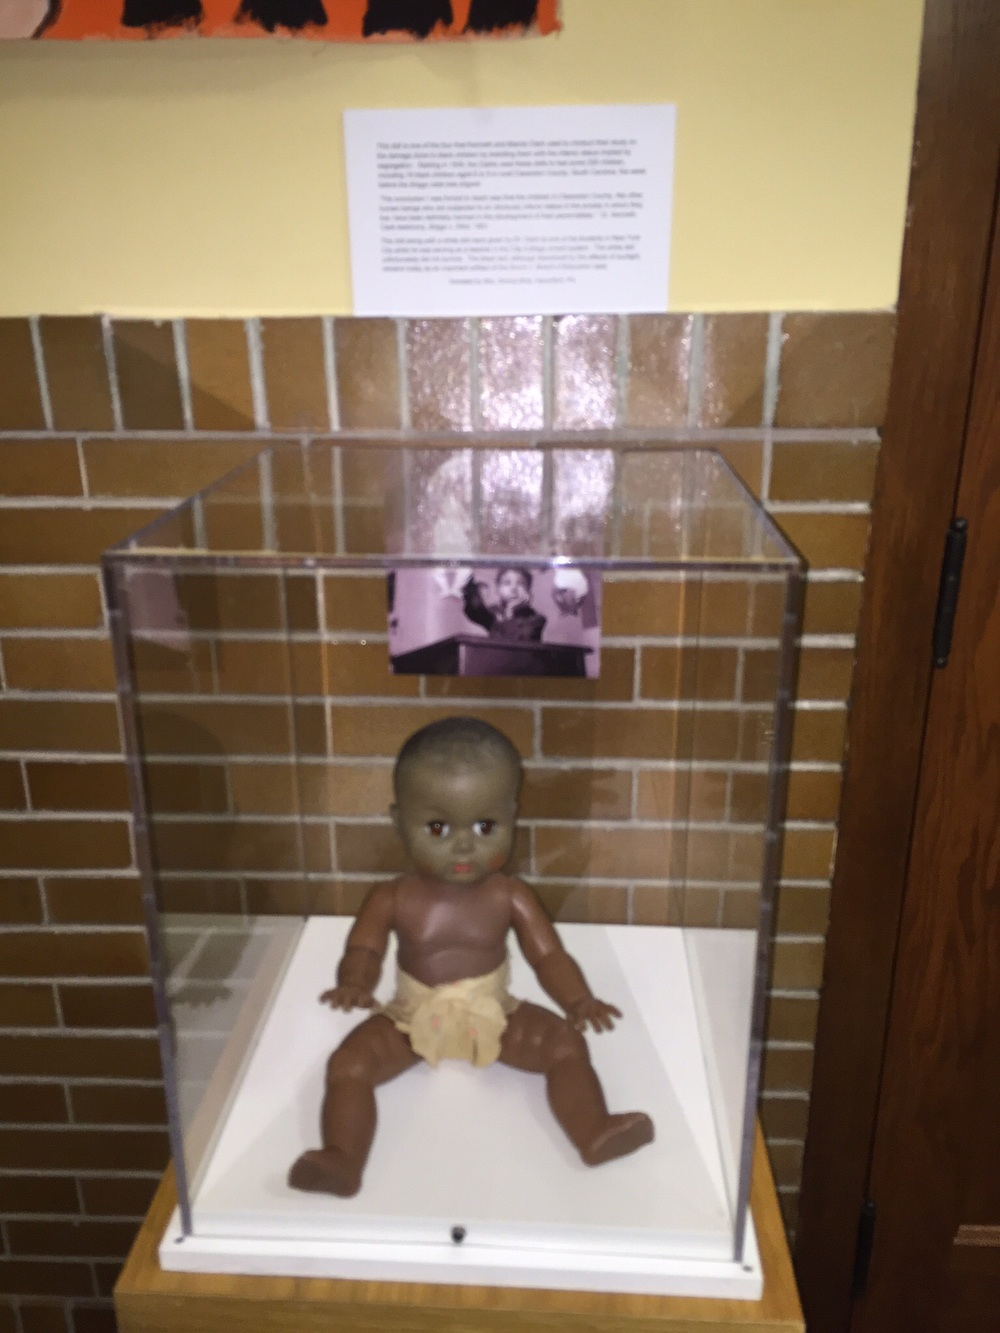 "This doll was used to show the debilitating effects ""seperate but equal"" had on the minds of young black children .. Black Kids at the time  associated dark with wrong and/or inferior in spite of the quote unquote seperate but equal educational system.."